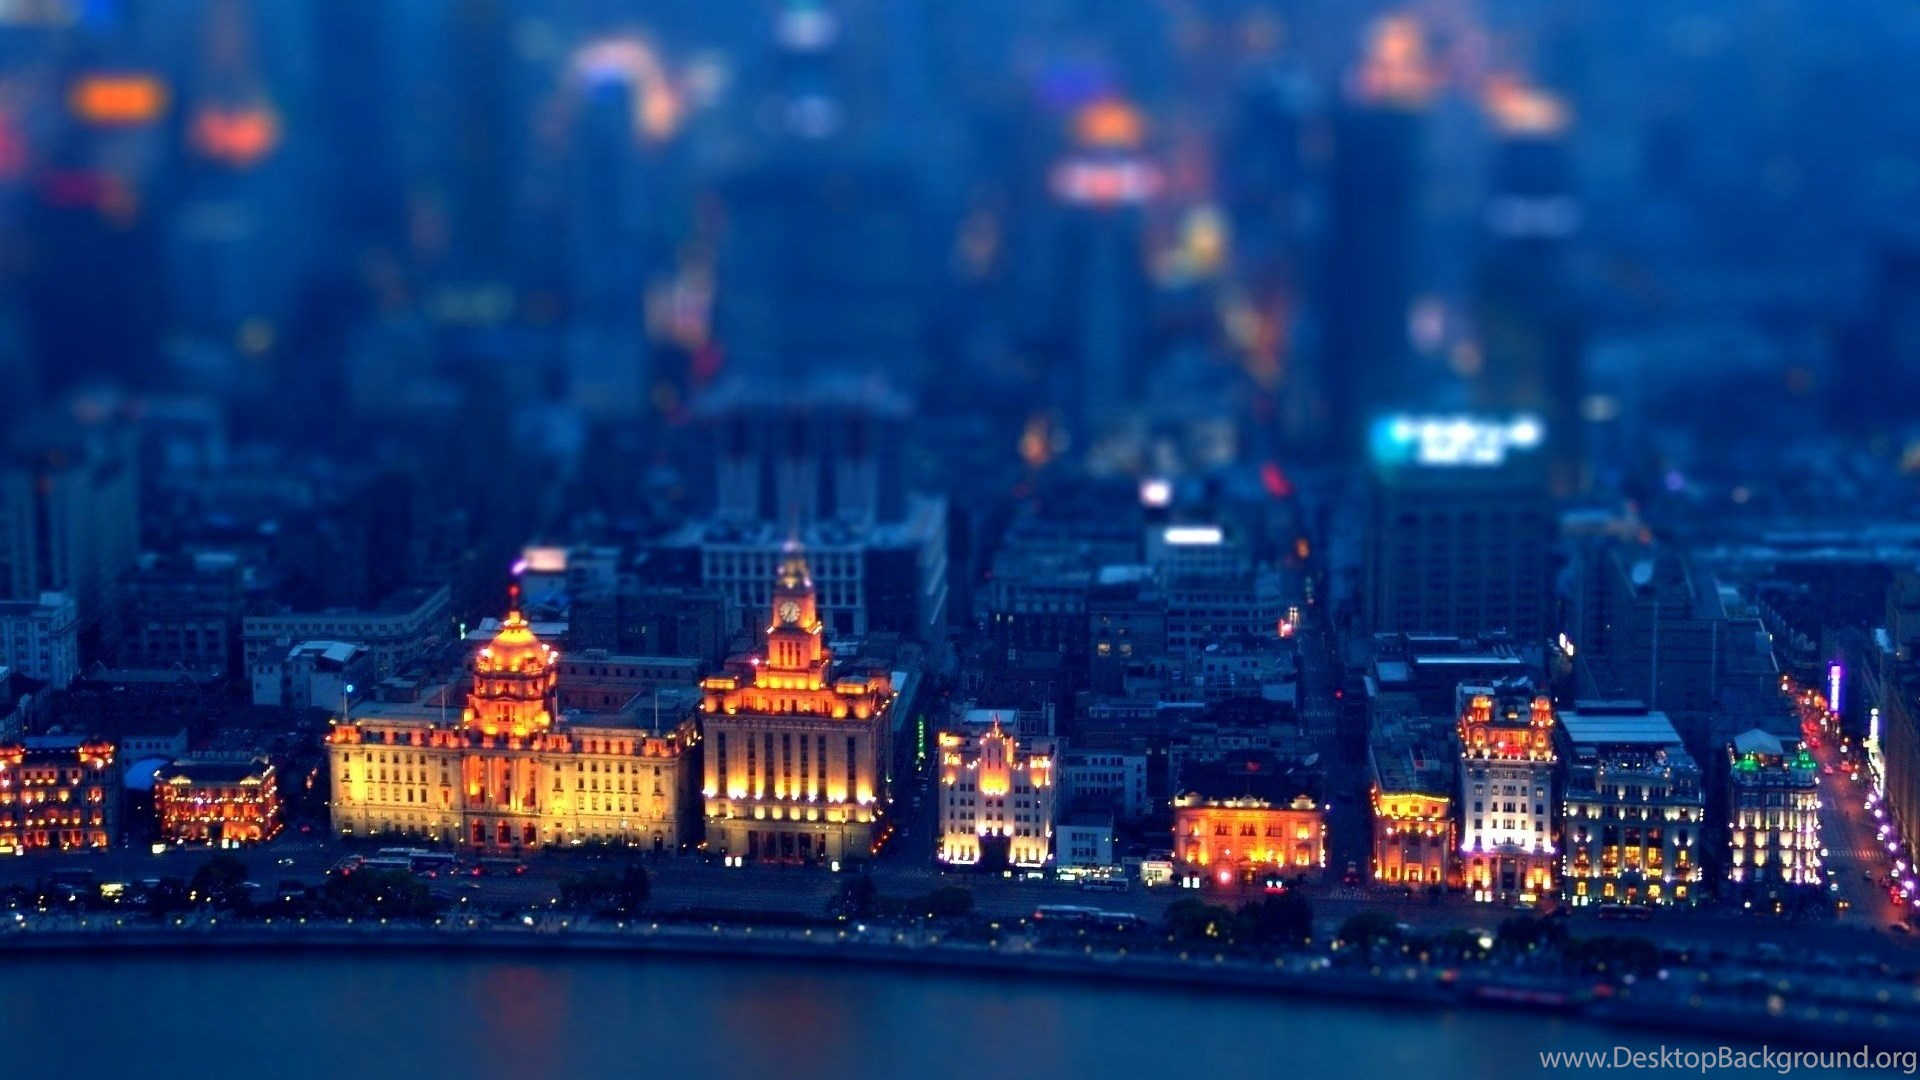 miniature city at night seafront tilt shift desktop wallpapers